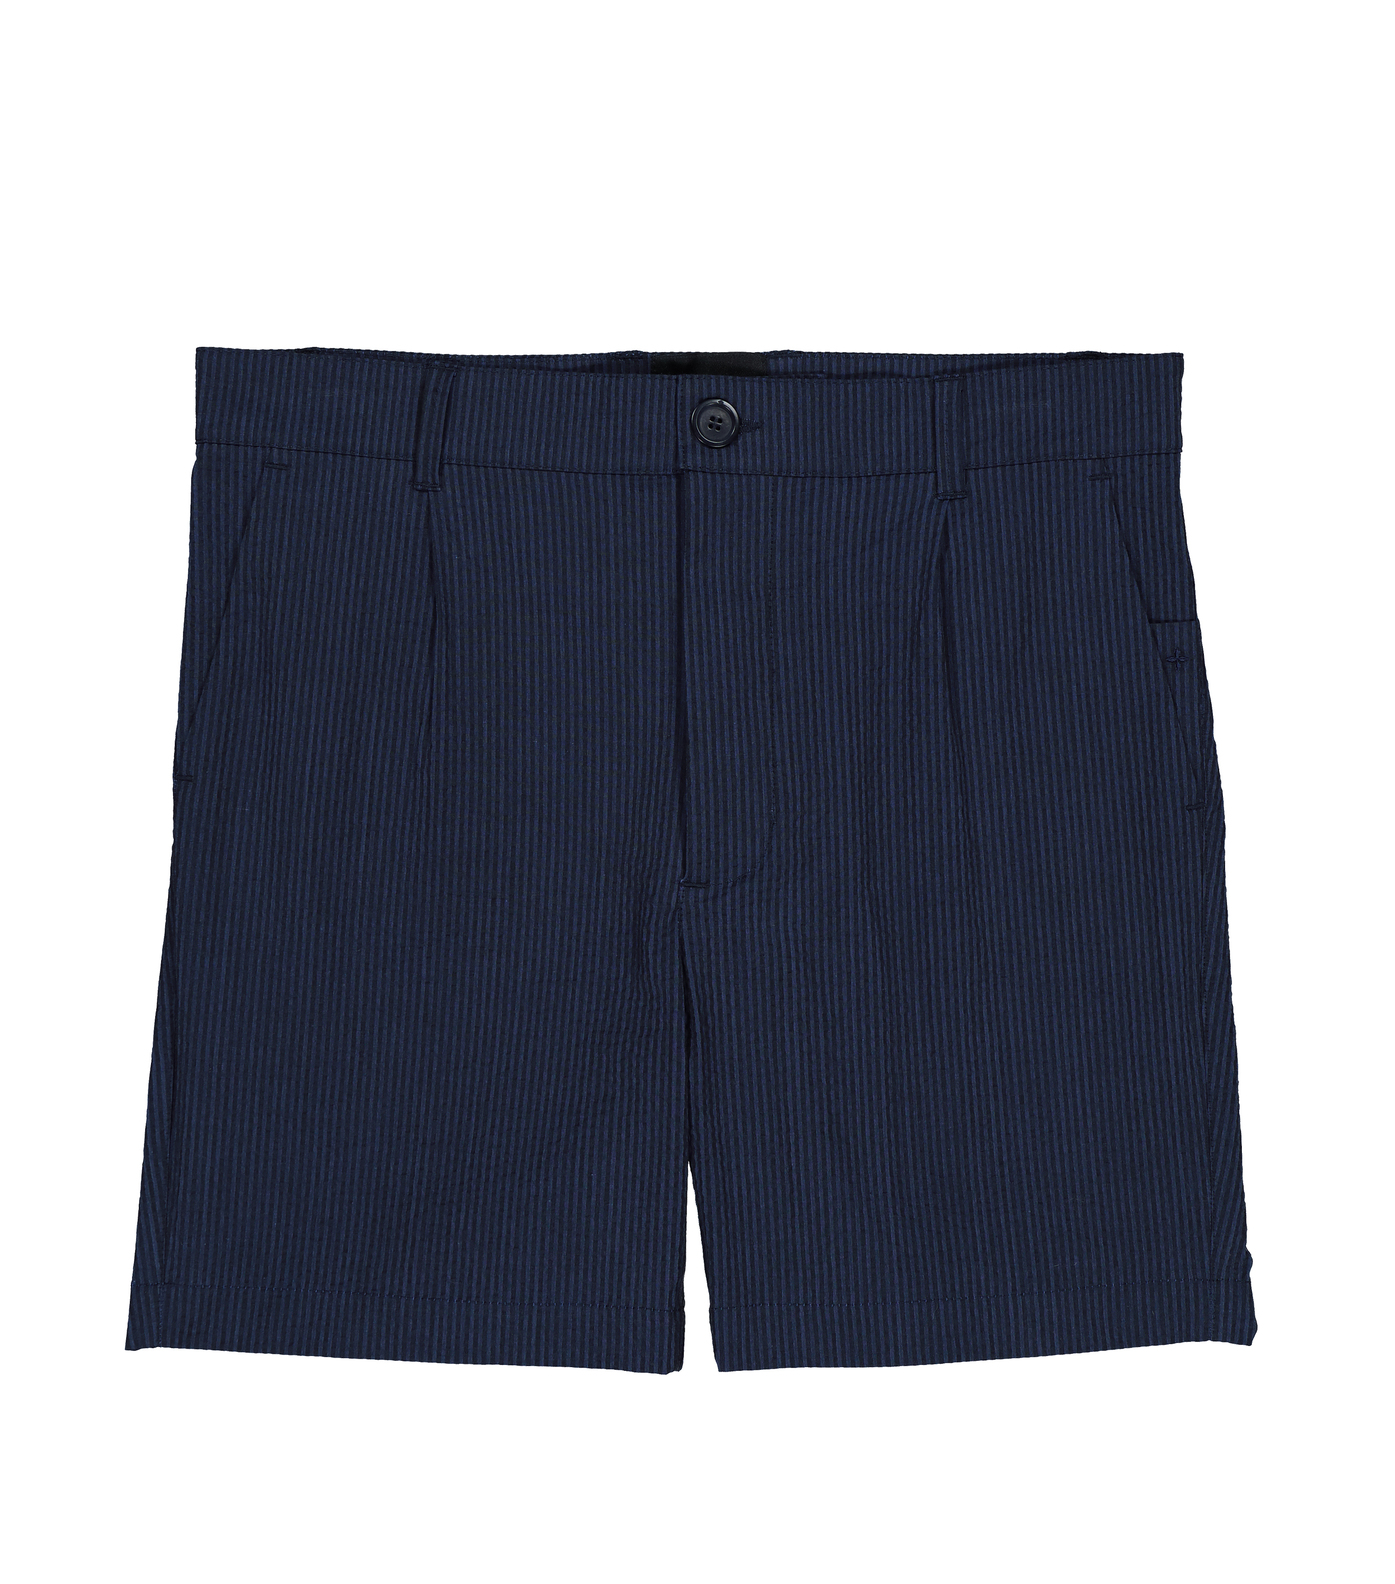 SHORTPANTS SP5 - Navy stripes